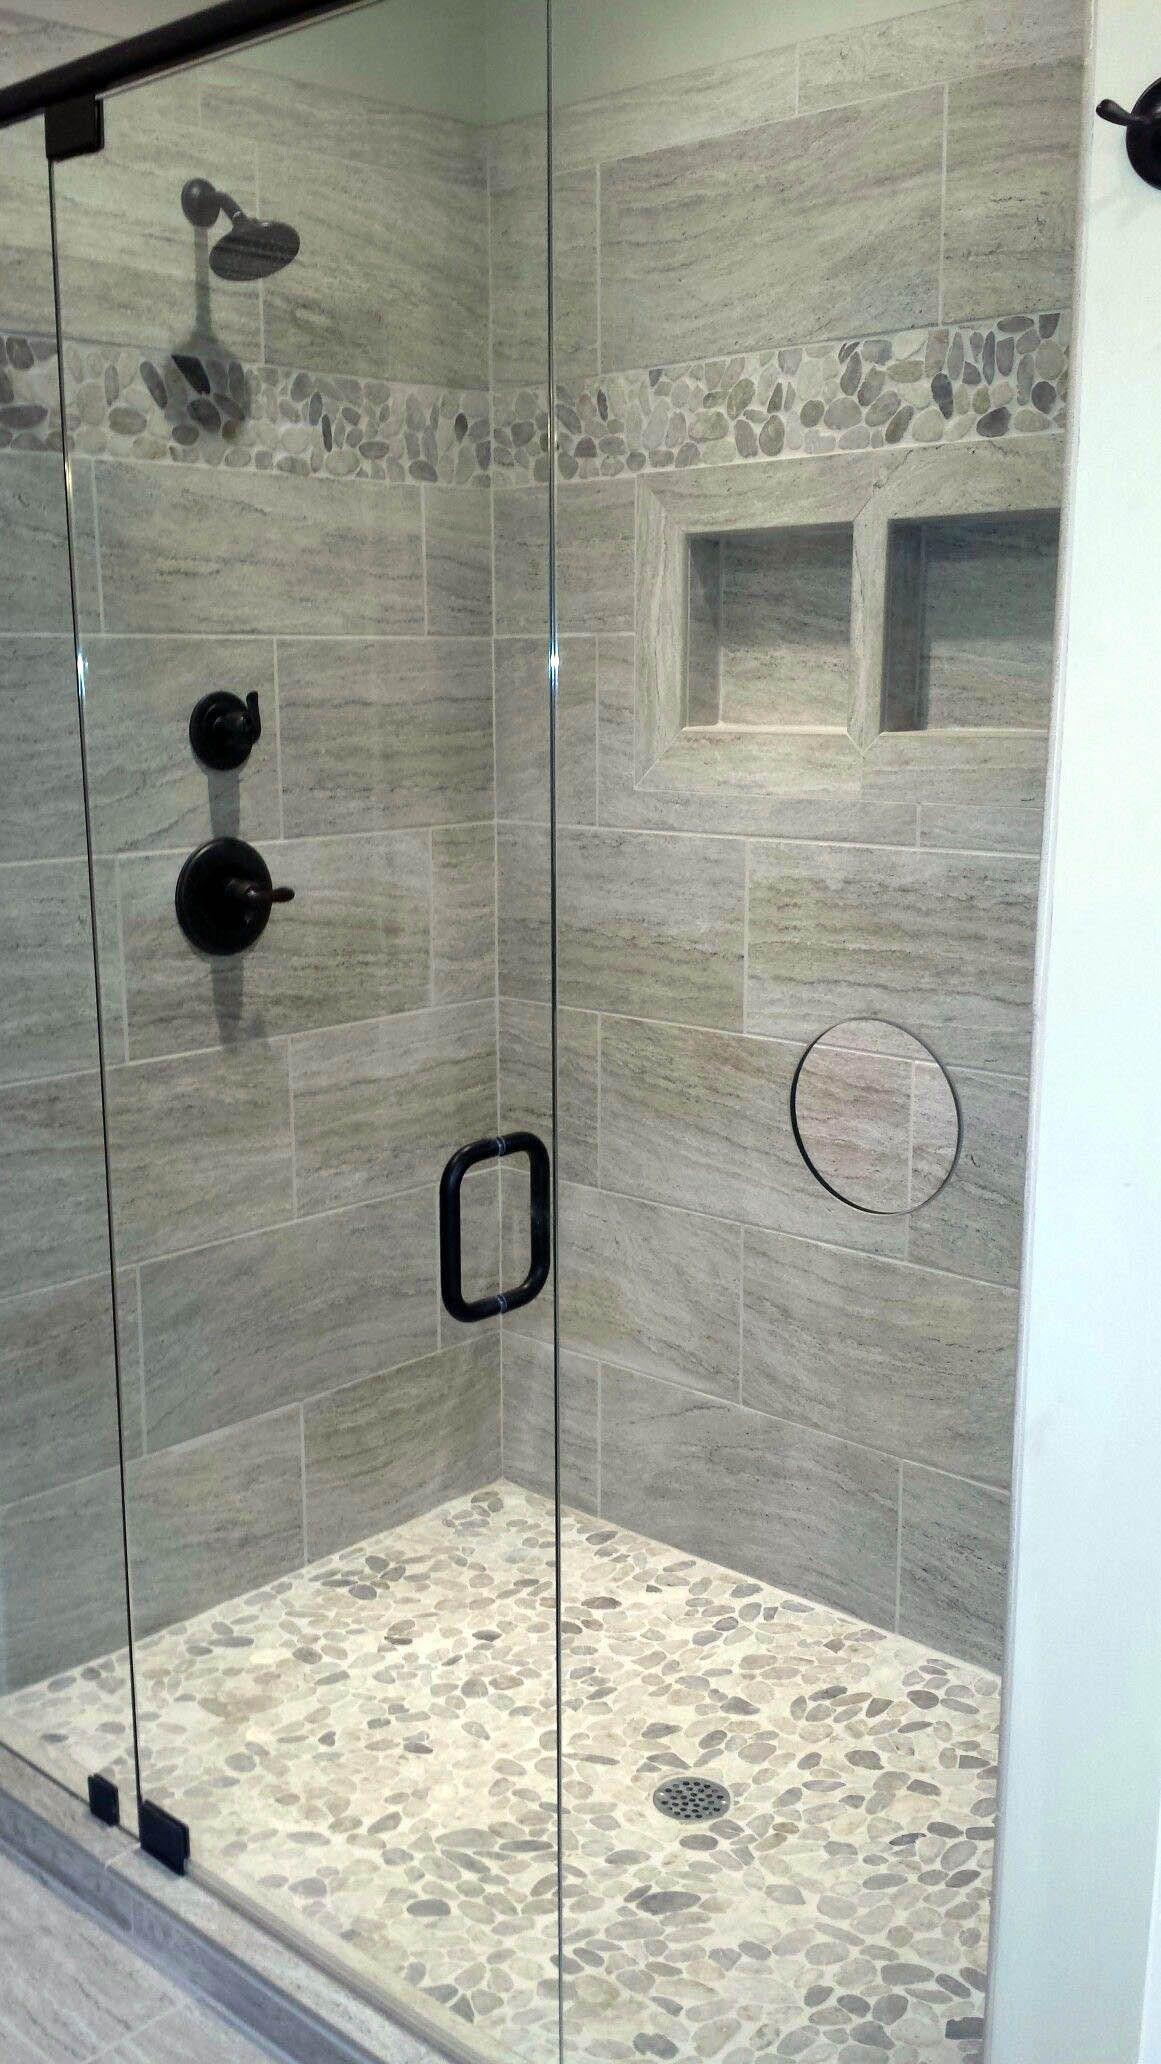 Different Shower Tile Ideas Subway Only On This Page Bathroom Shower Stalls Bathroom Remodel Shower Bathroom Shower Tile